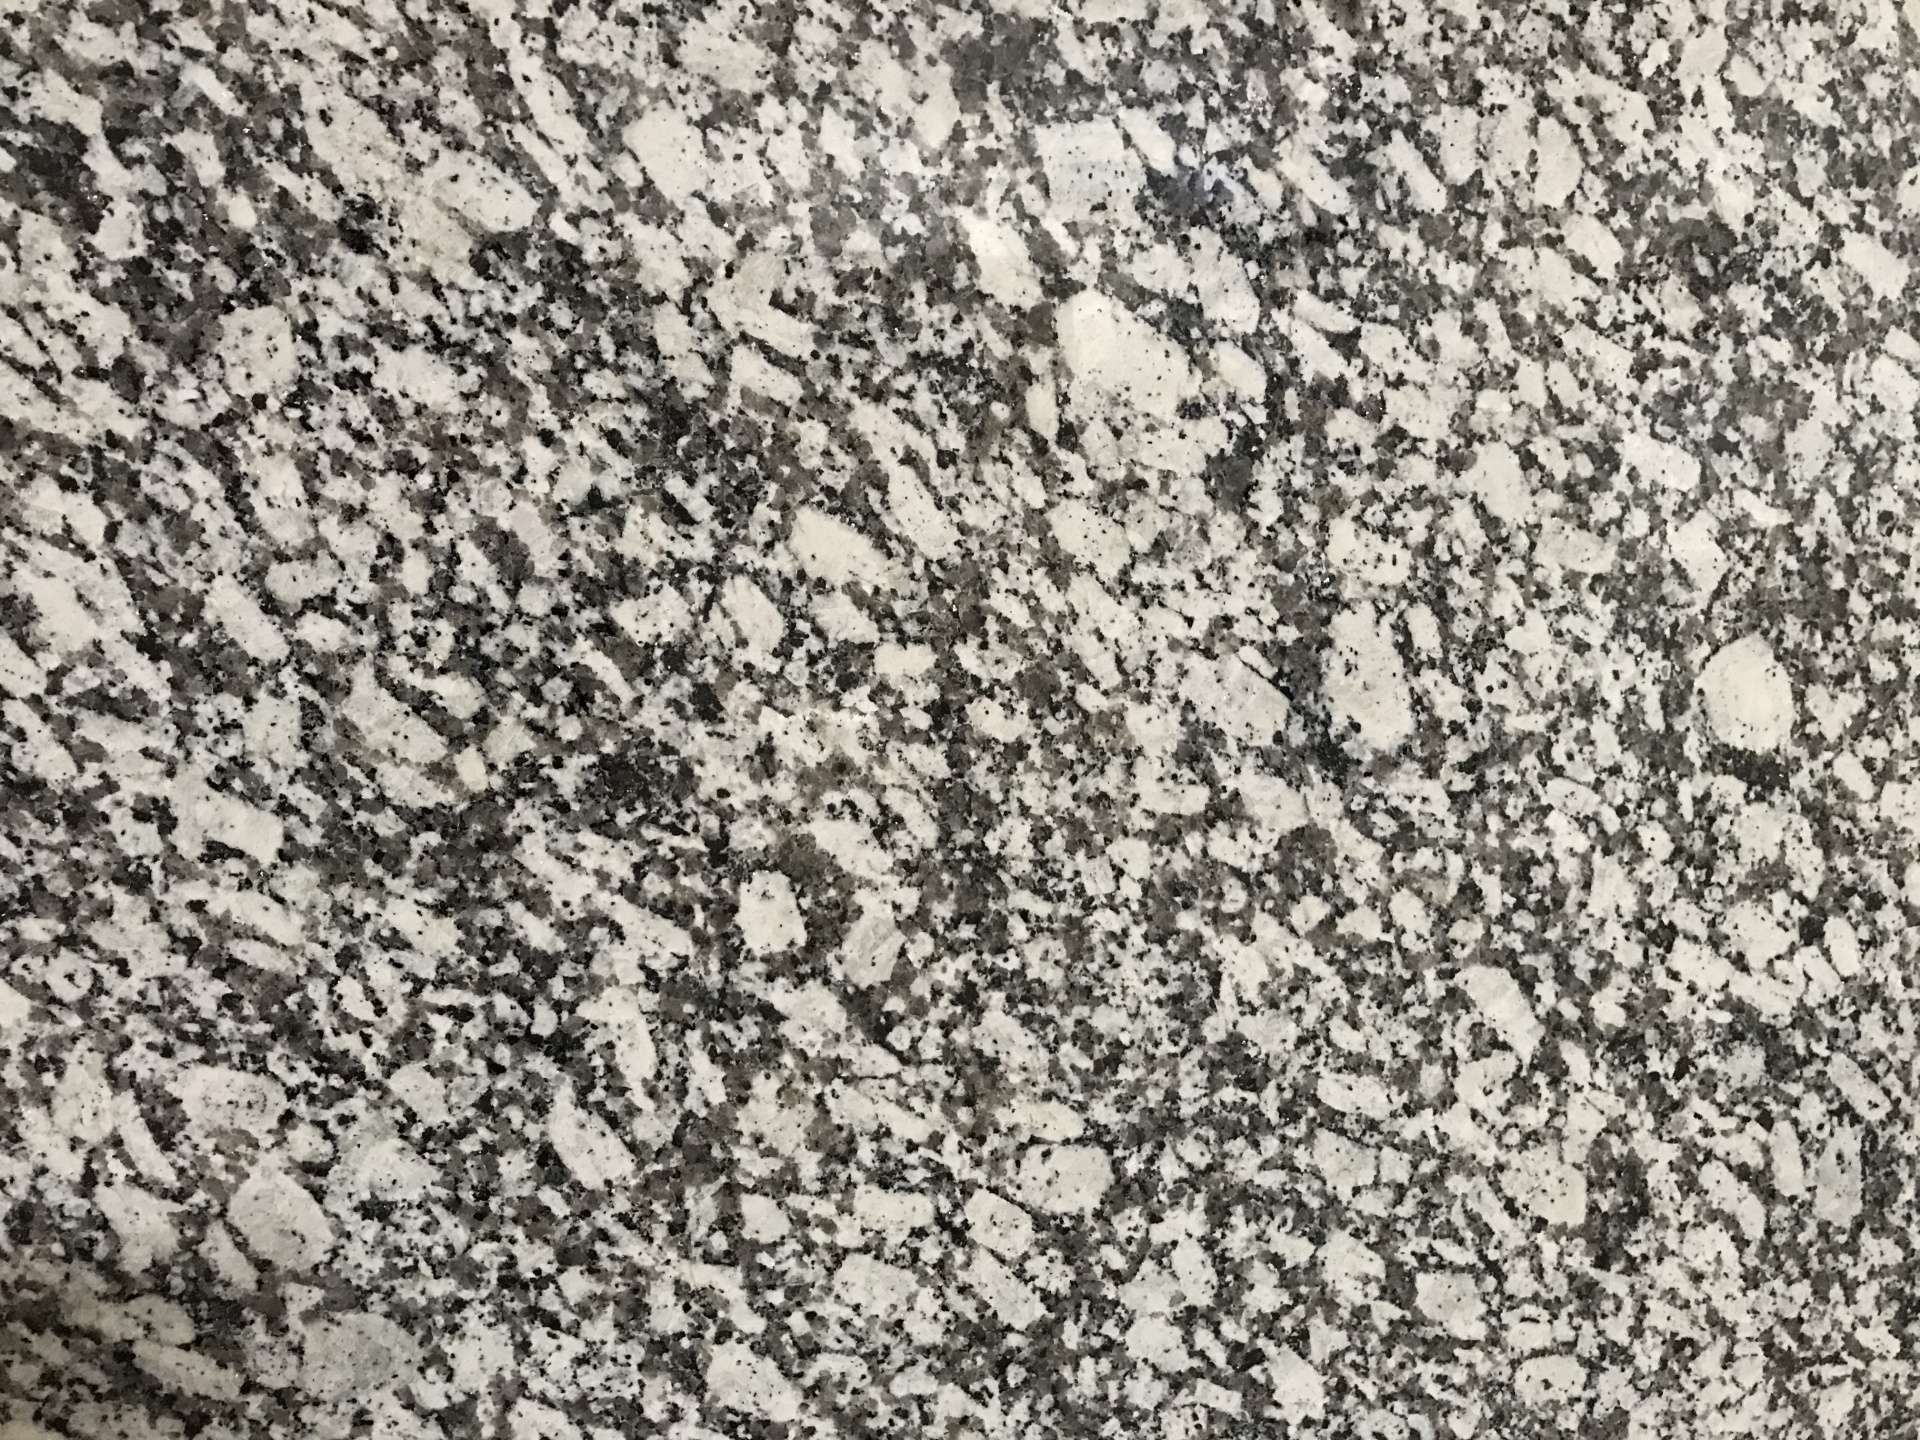 Granite Countertops Everett Wa Granite Slabs Countertop Products